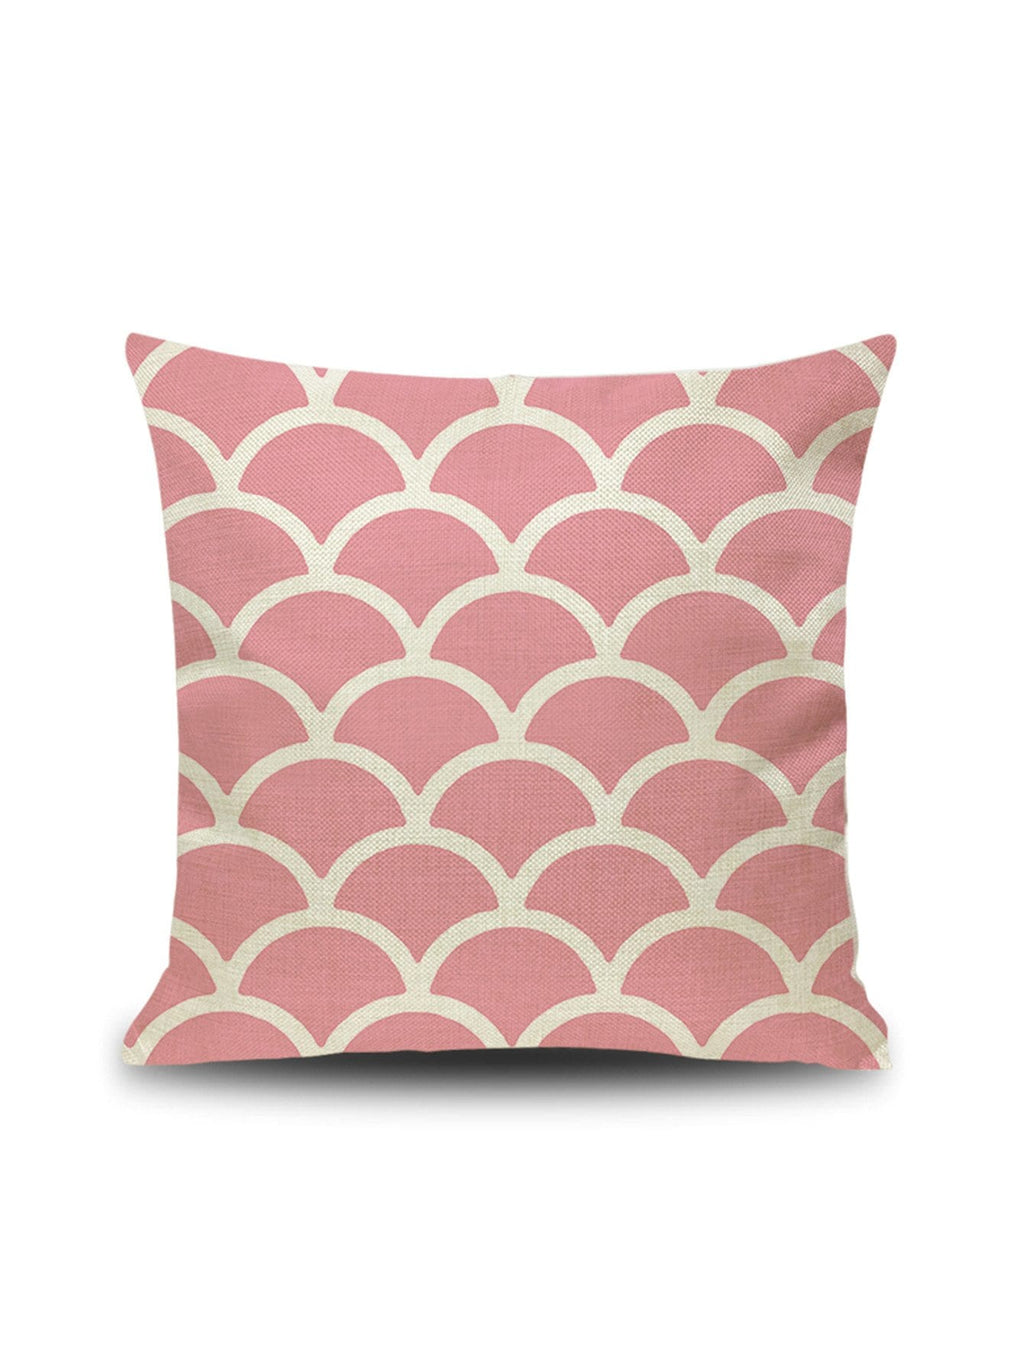 Scale Pattern Cushion Cover